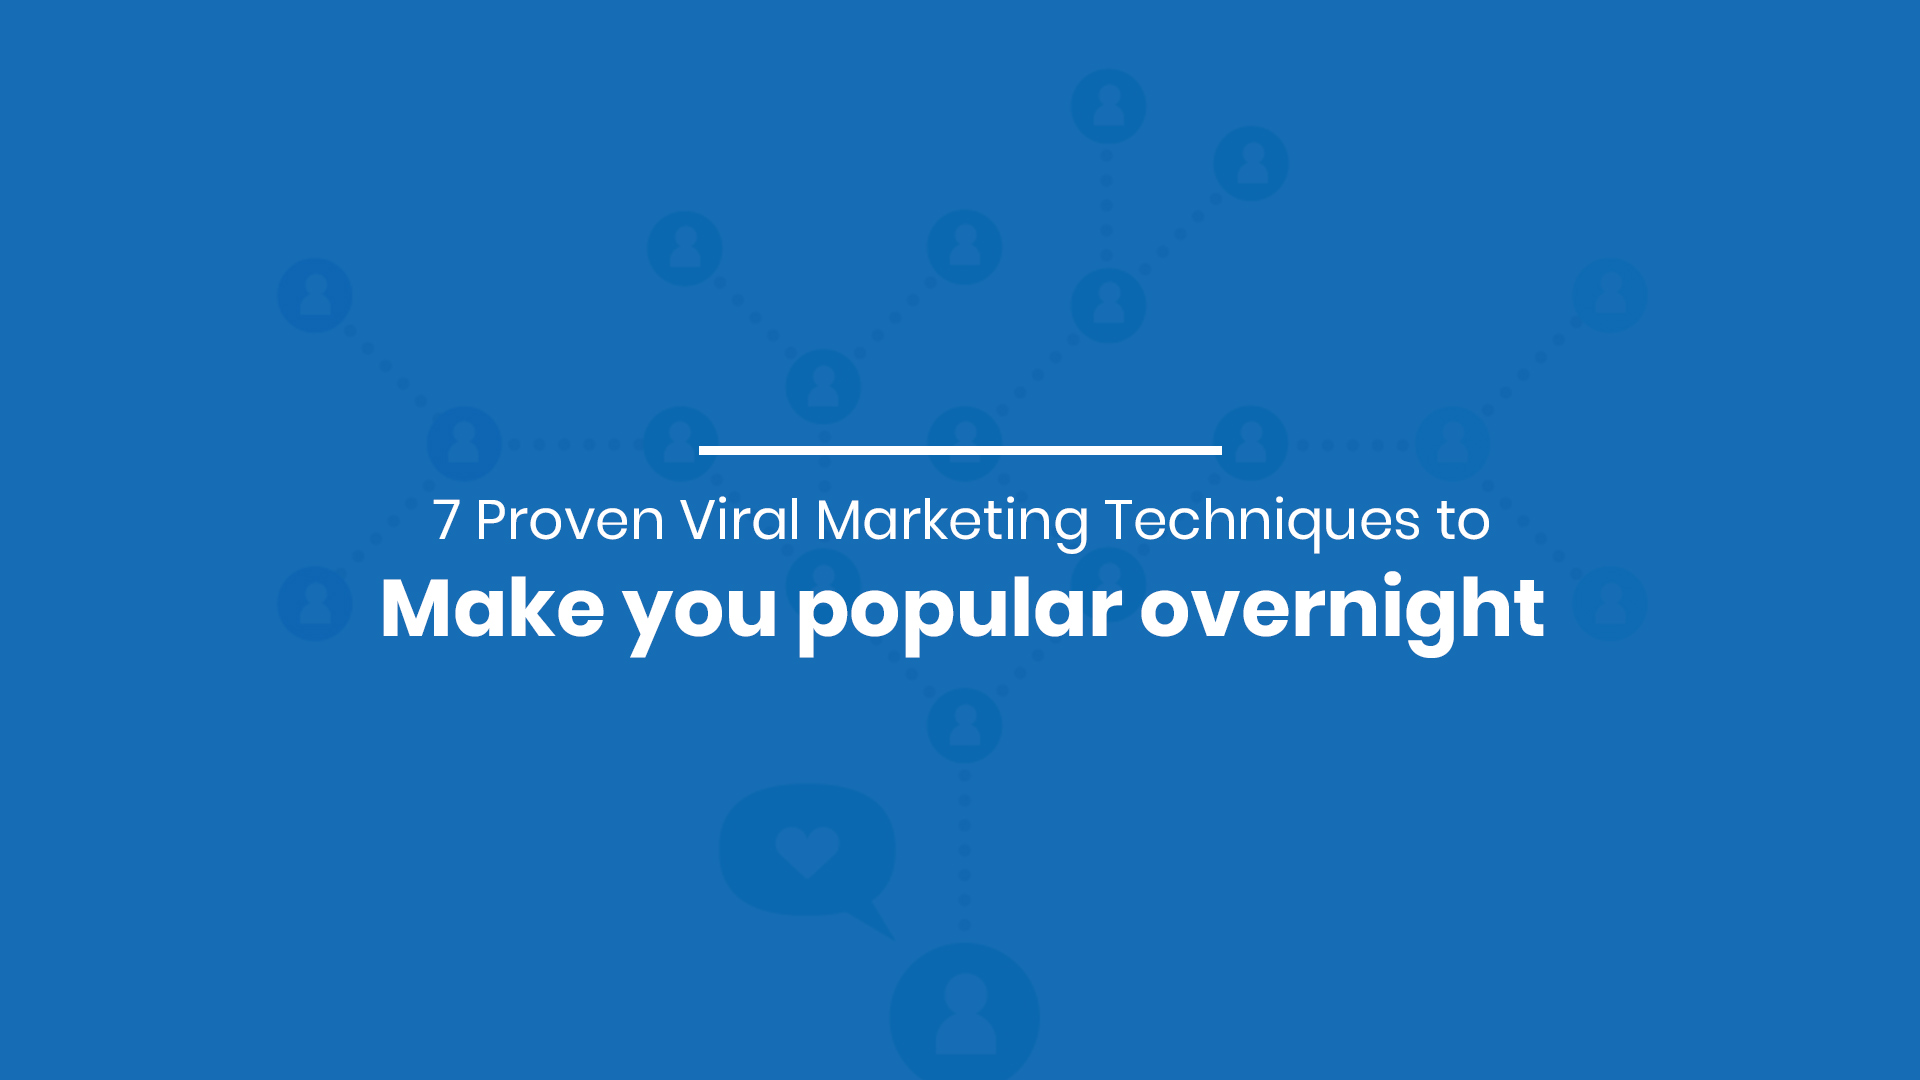 7 Proven Viral Marketing Techniques to Make your Famous Overnight